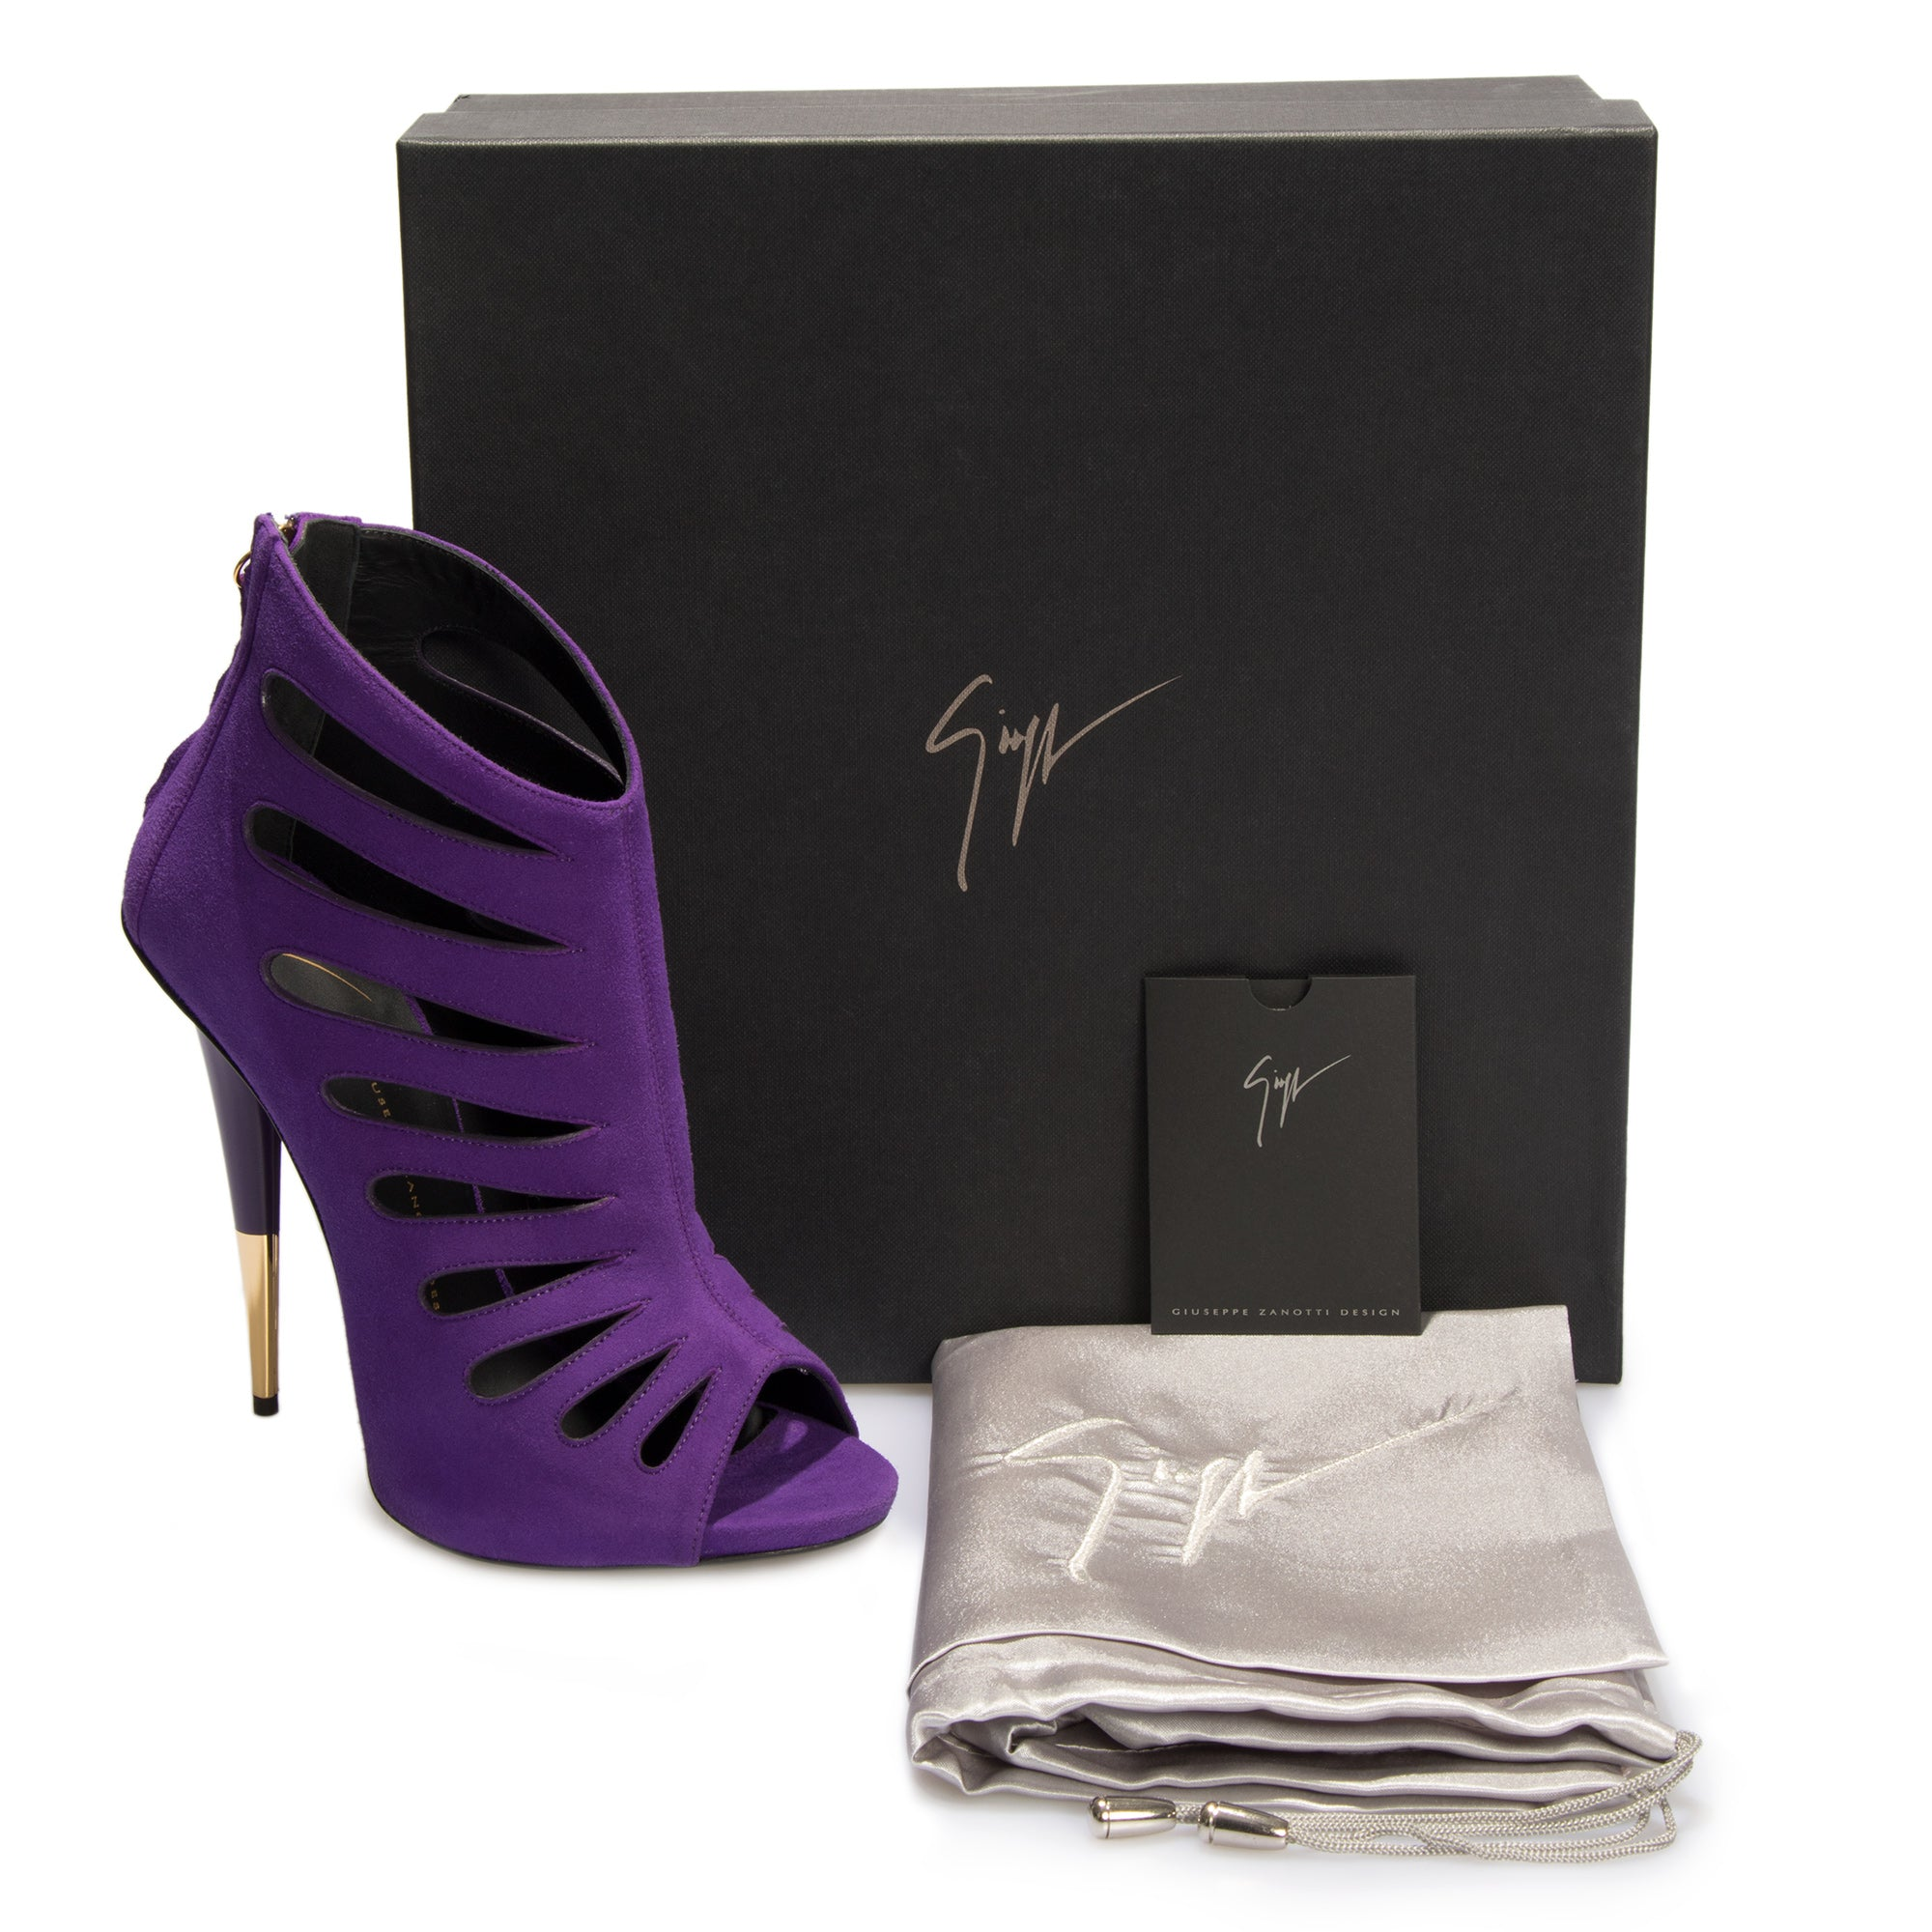 Giuseppe Zanotti Alien Violet Cutout Suede 127mm Ankle Boots